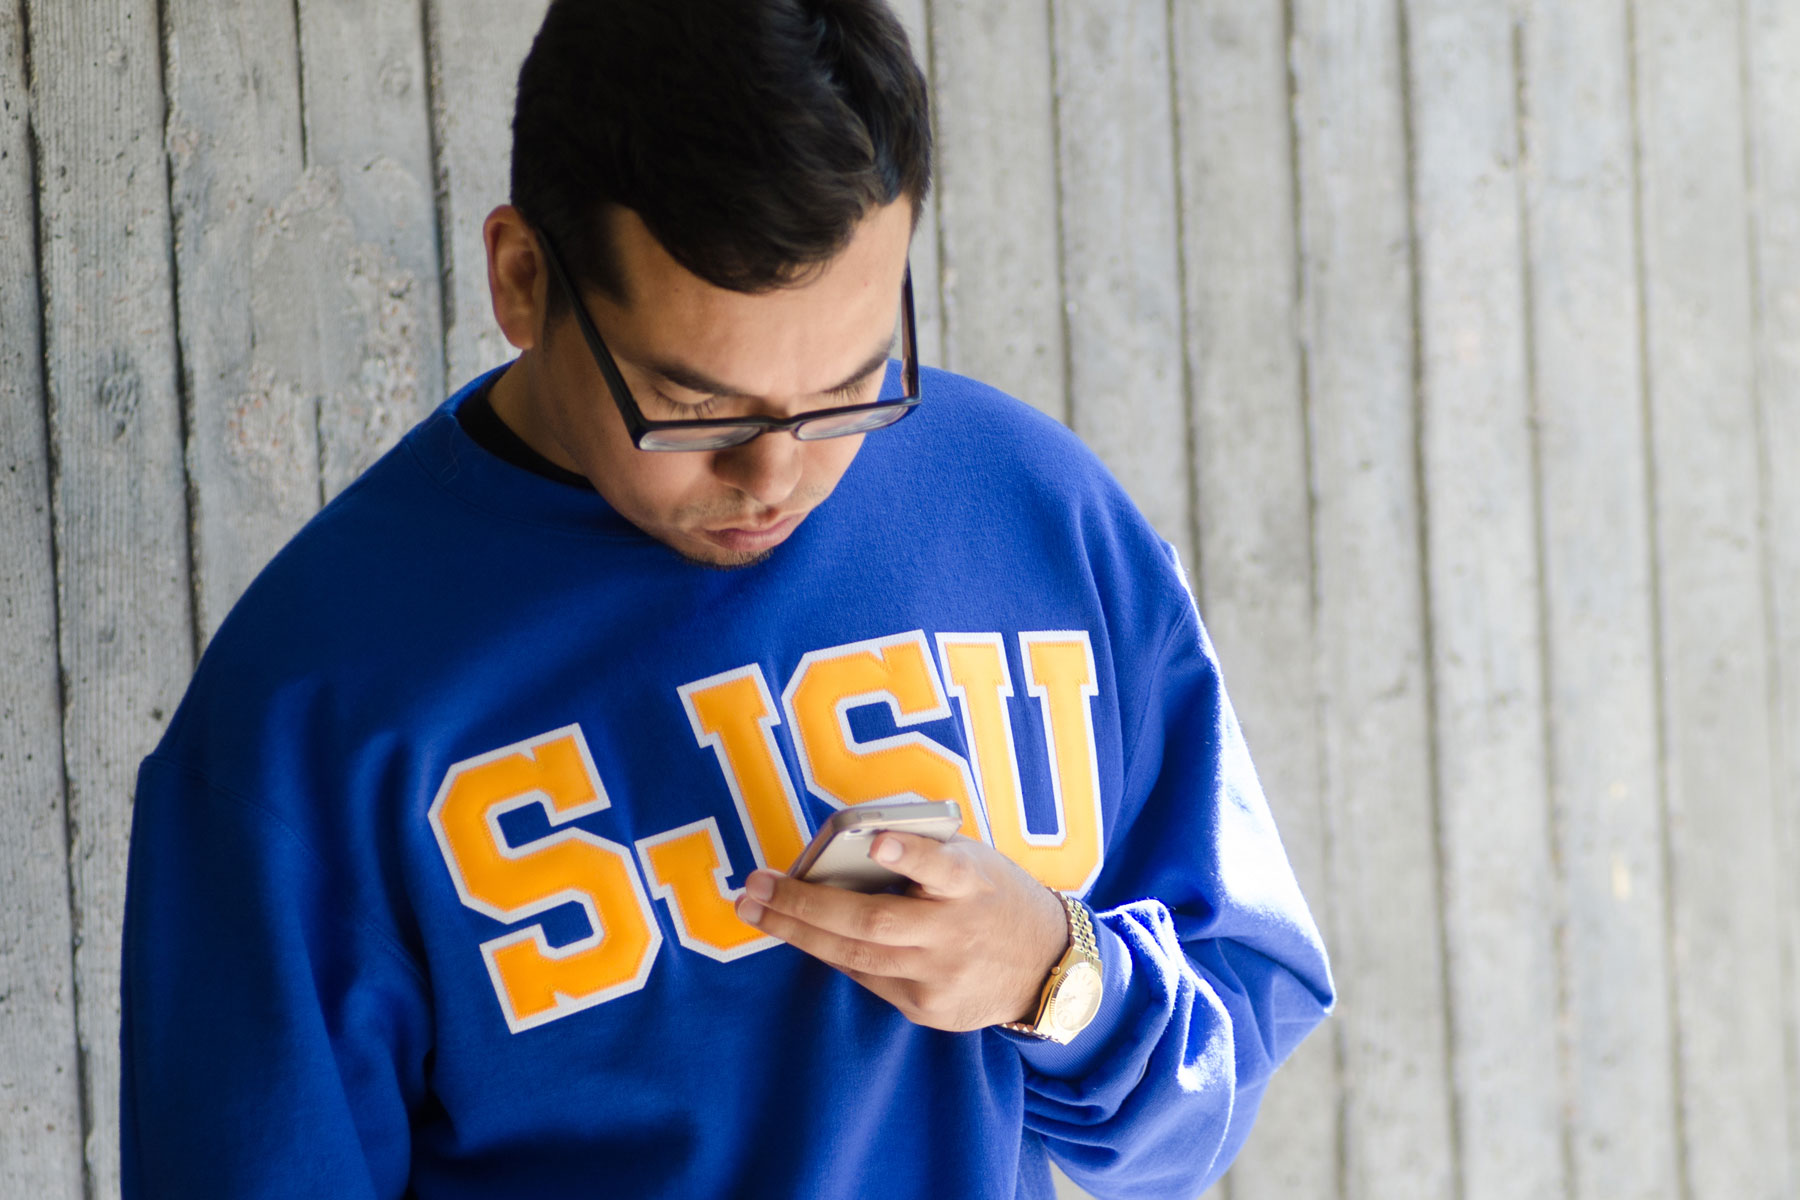 SJSU Student on his phone receiving emergency alerts.